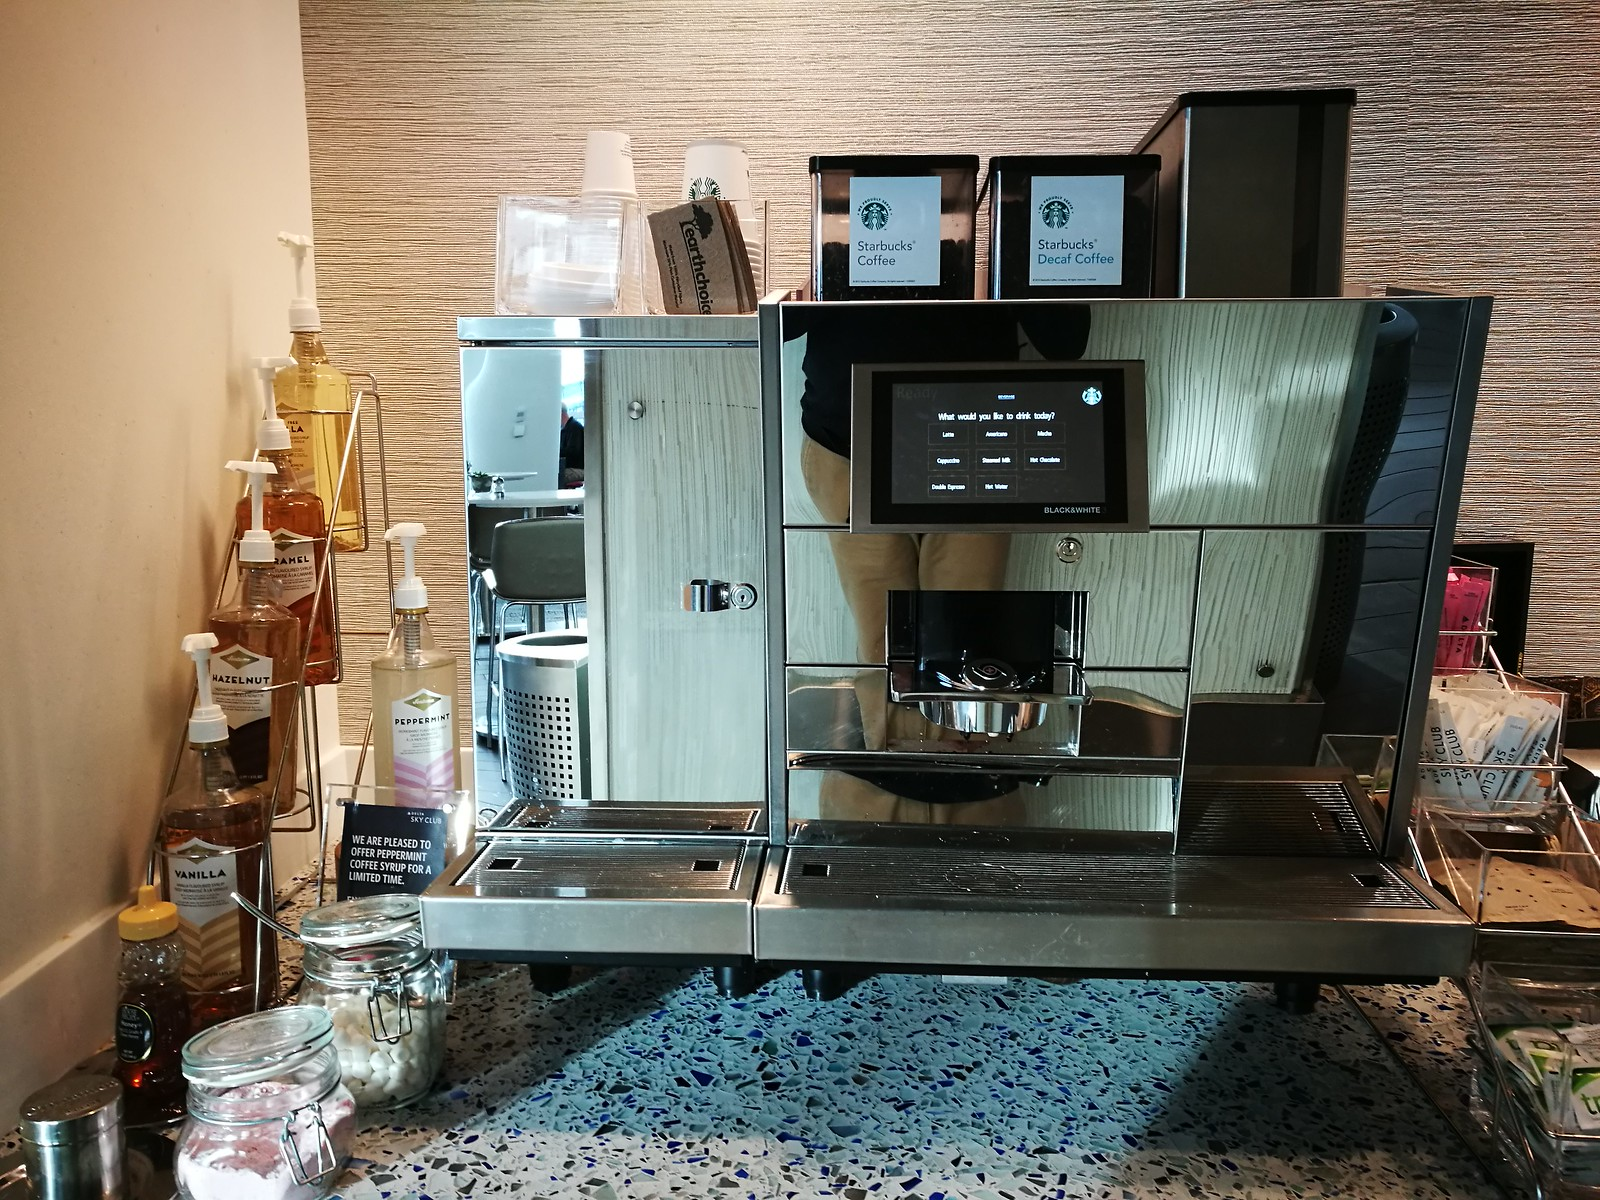 Starbucks espresso machine